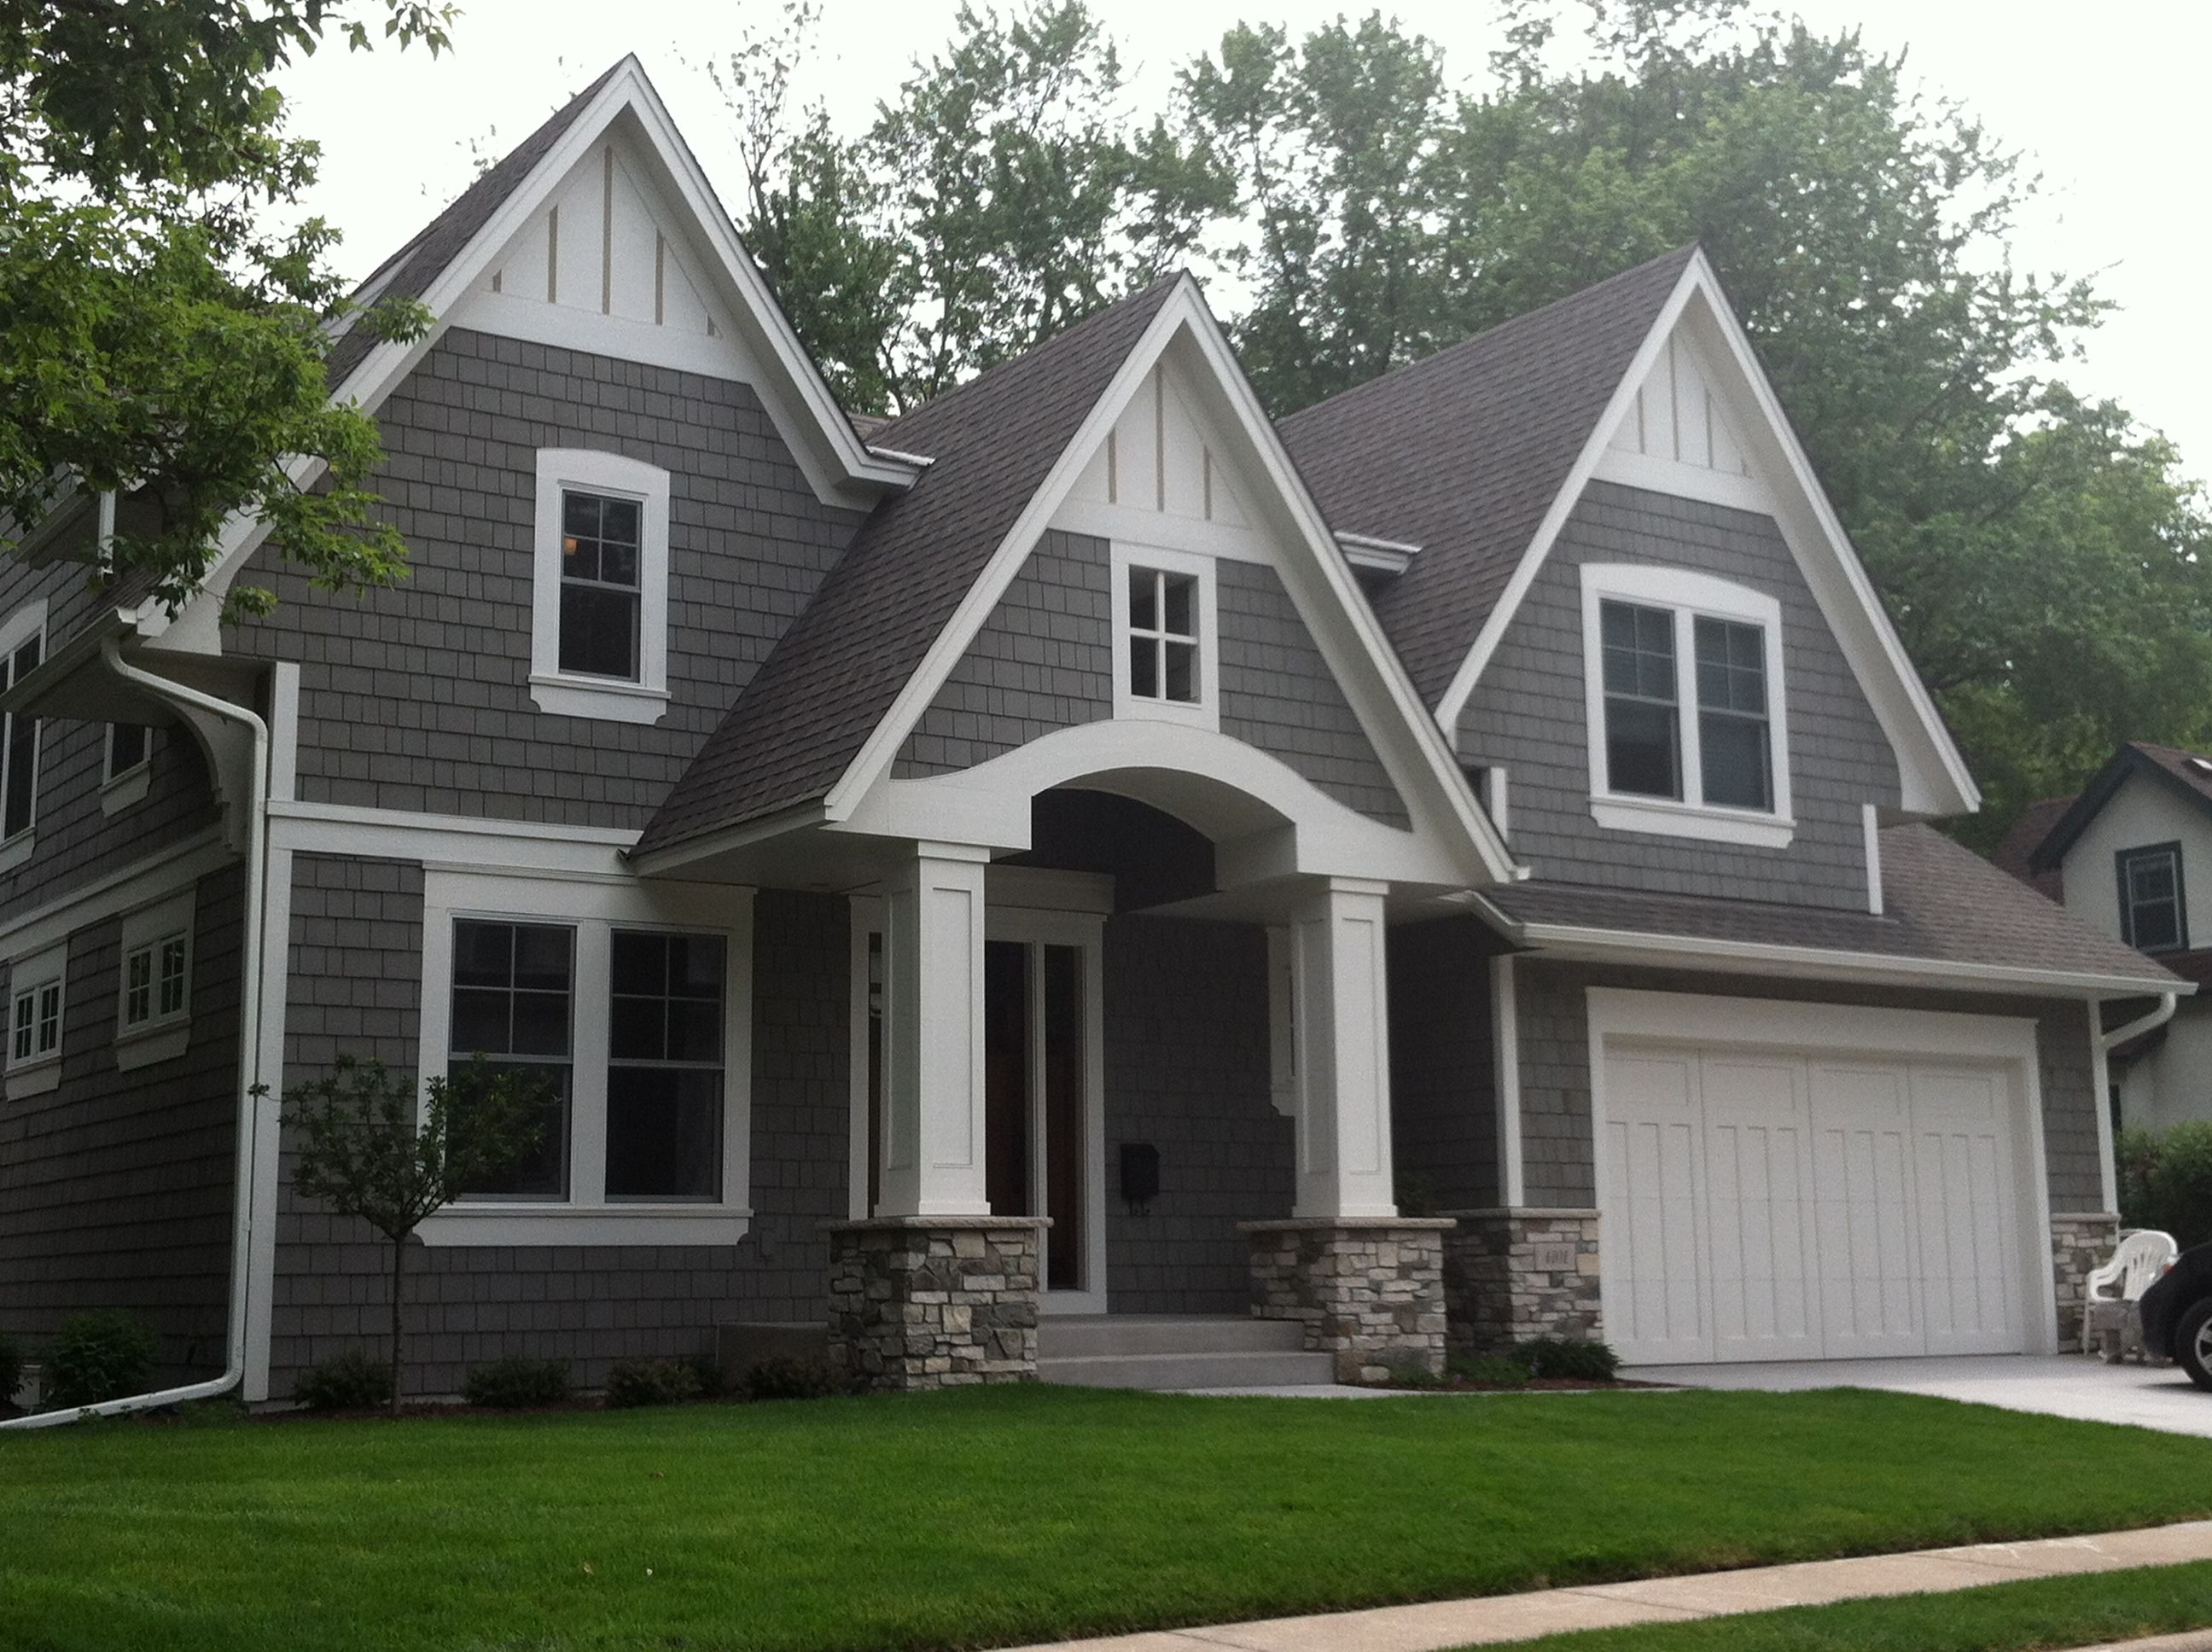 exterior+house+color+schemes | Barrier Exteriors Minnesota | Home ...